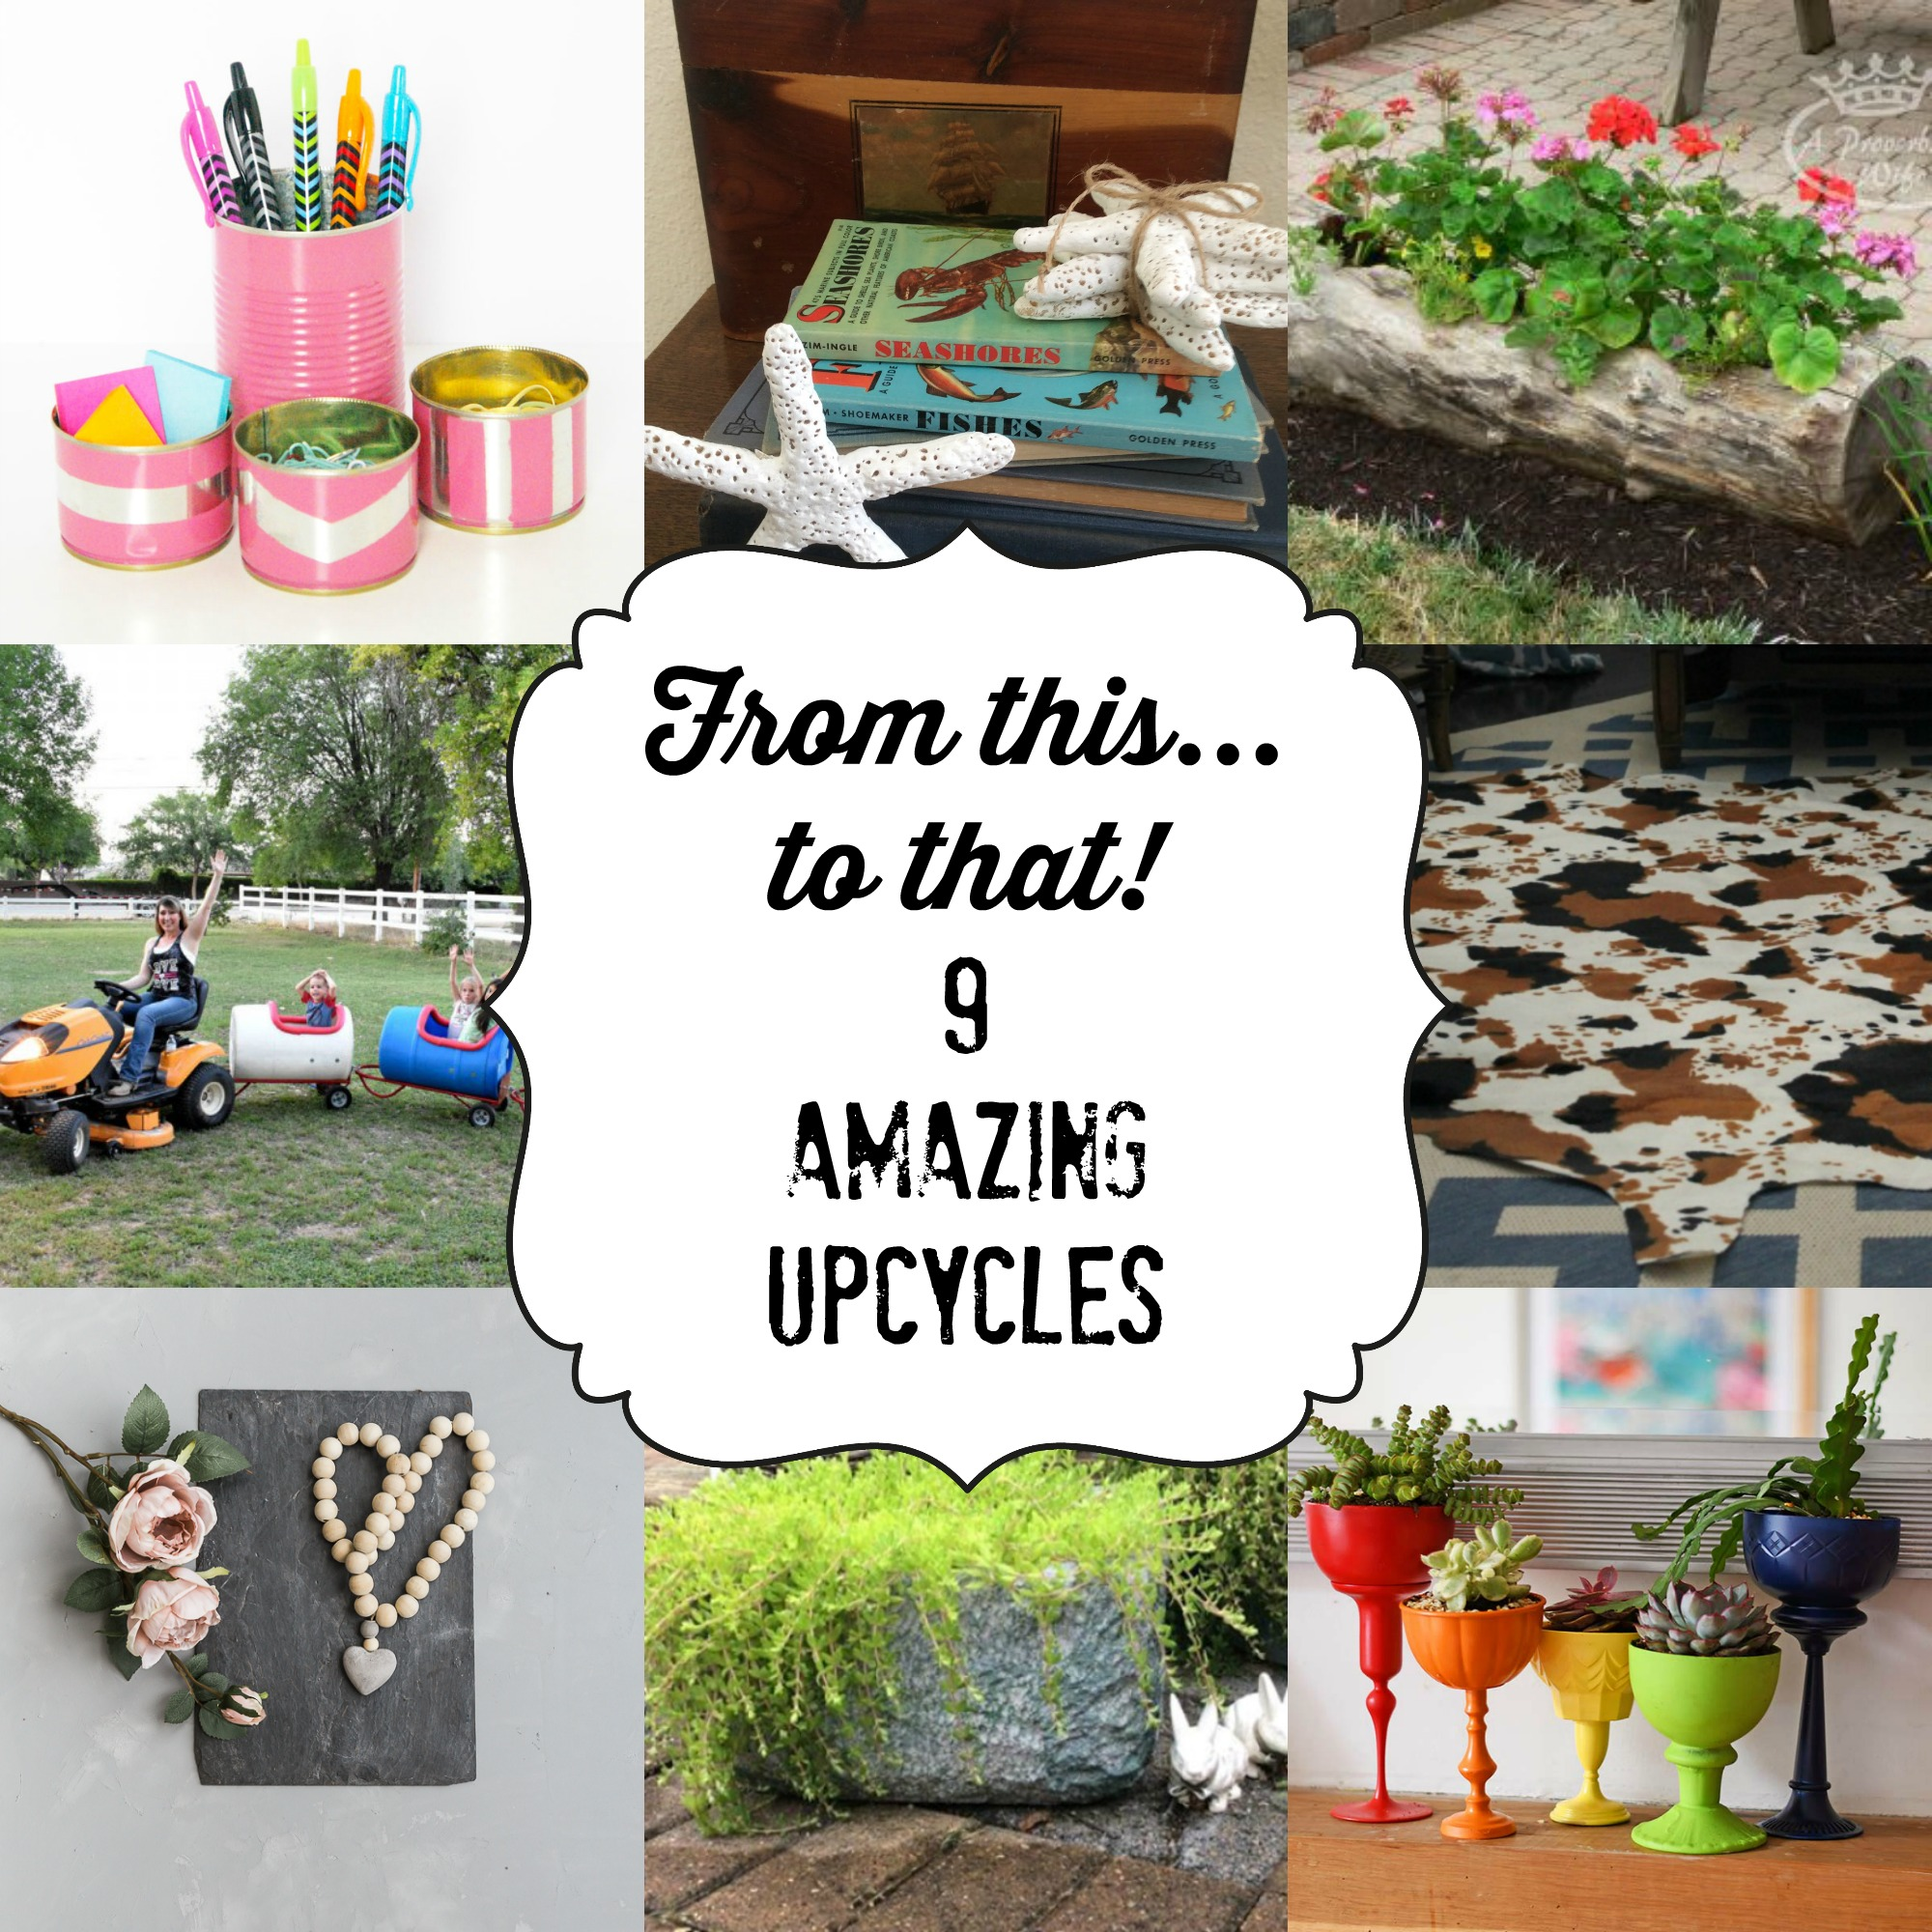 9 Amazing Upcycles